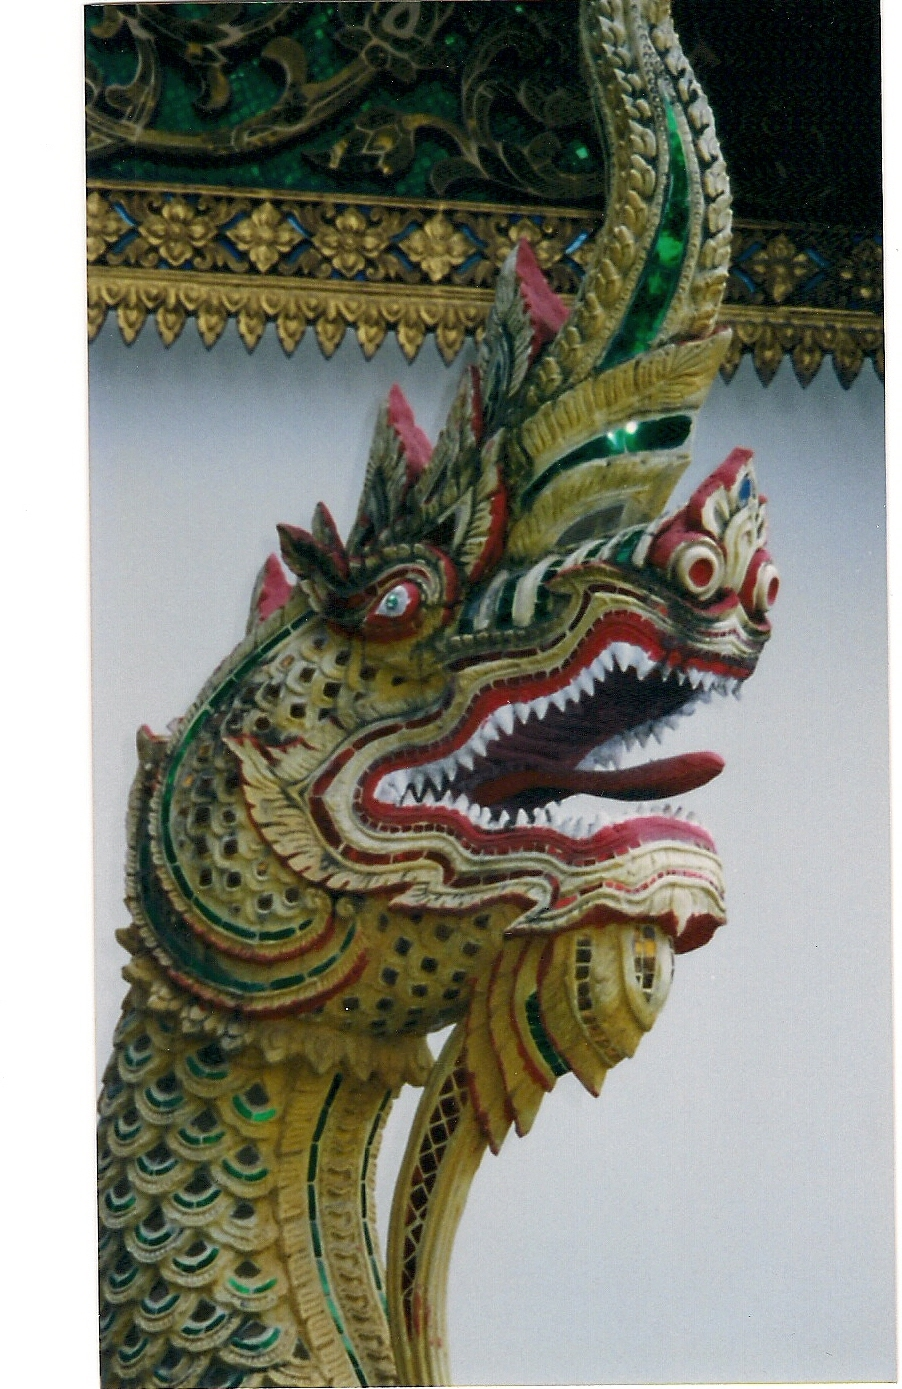 Naga, guarding the entrance to a Temple in Chiang Mai, Thailand.